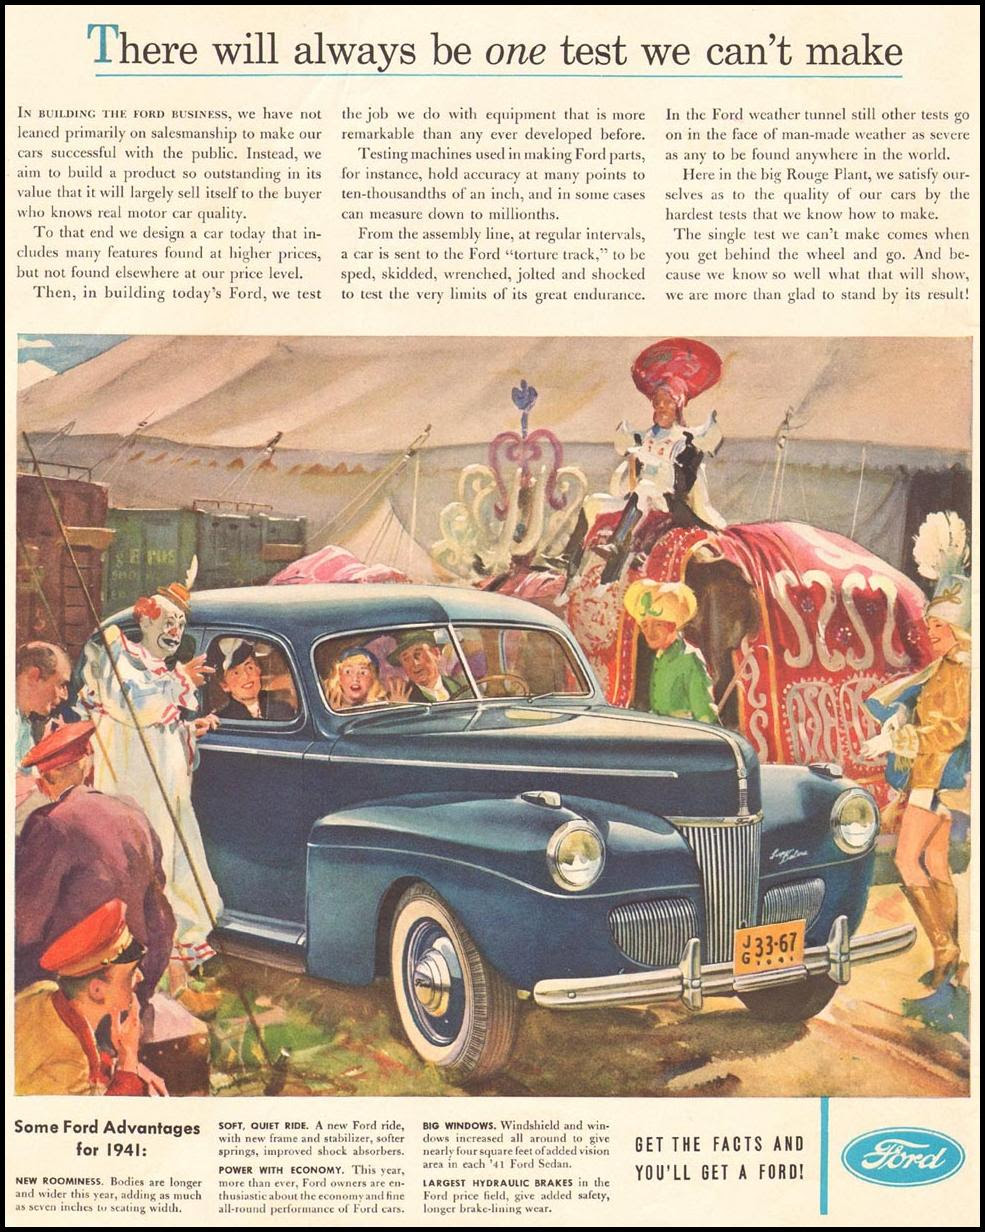 FORD AUTOMOBILES LIFE 04/28/1941 INSIDE FRONT